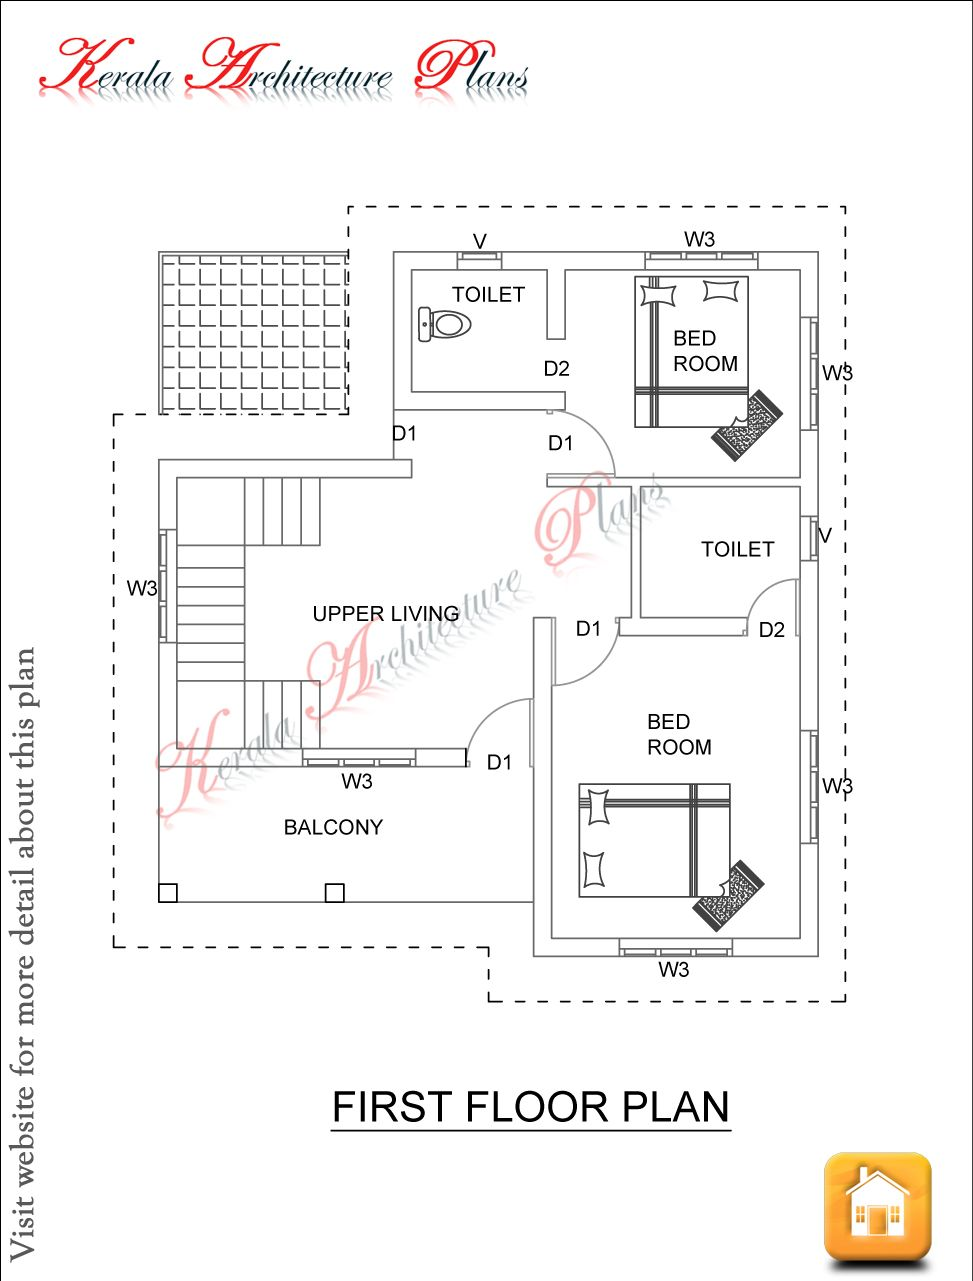 Kerala Architecture Plans Dec 06 Ff 1500 Square Feet House Plan Ground Floor And First Floor 1600 Sqft Kitchen How To Plan House Plans House Design Photos